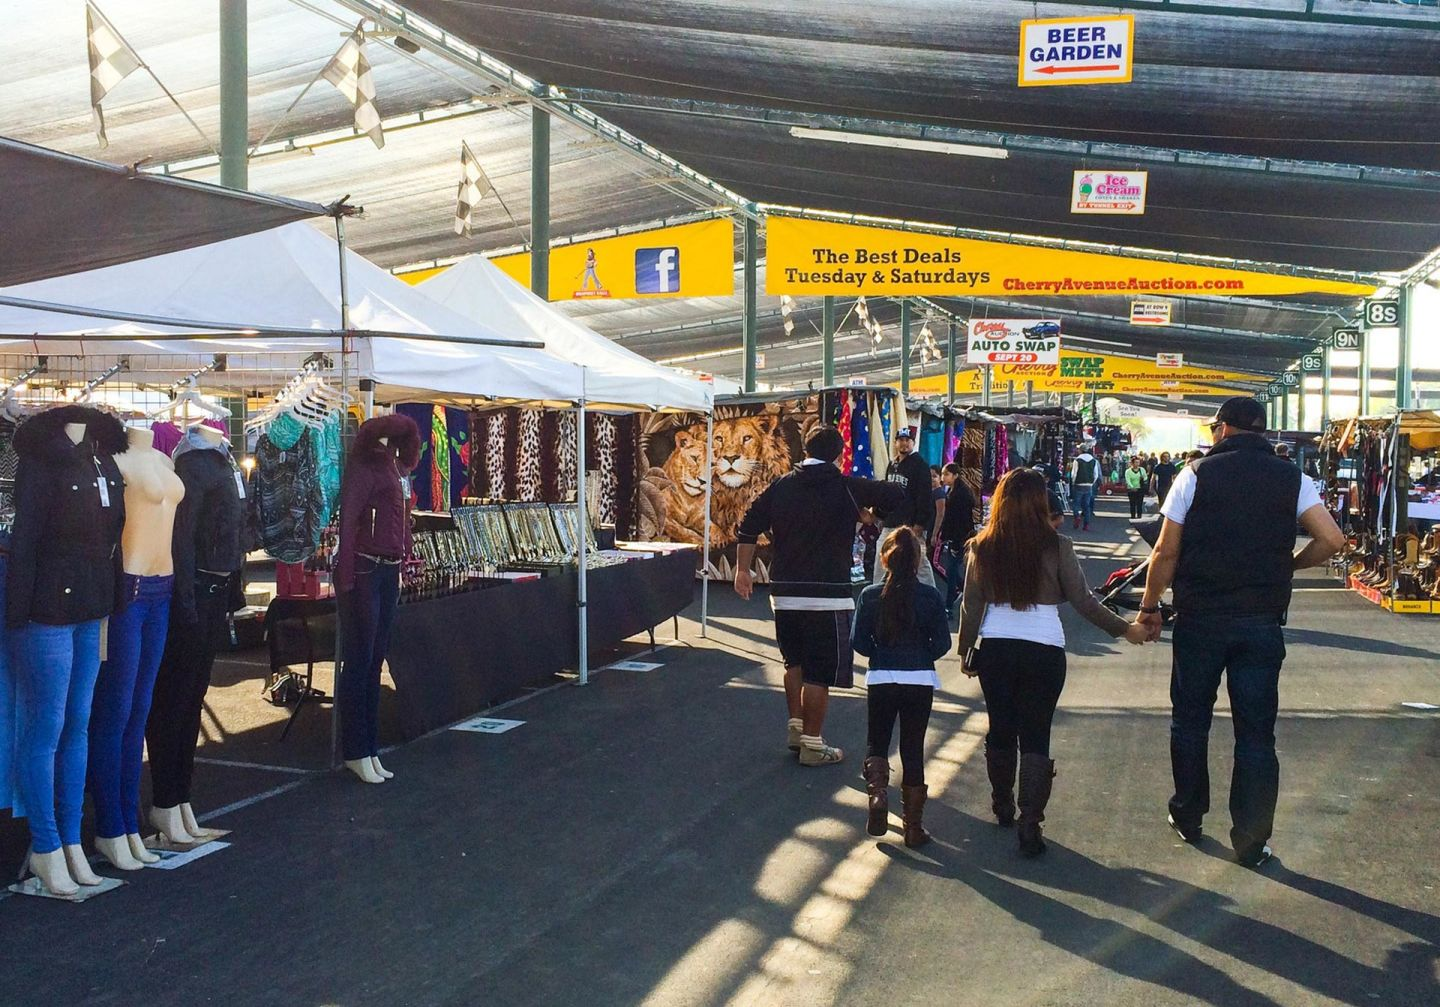 The Cherry Auction's booths, full of clothing, furniture, food and cars, sprawl across 54 acres in southern Fresno.